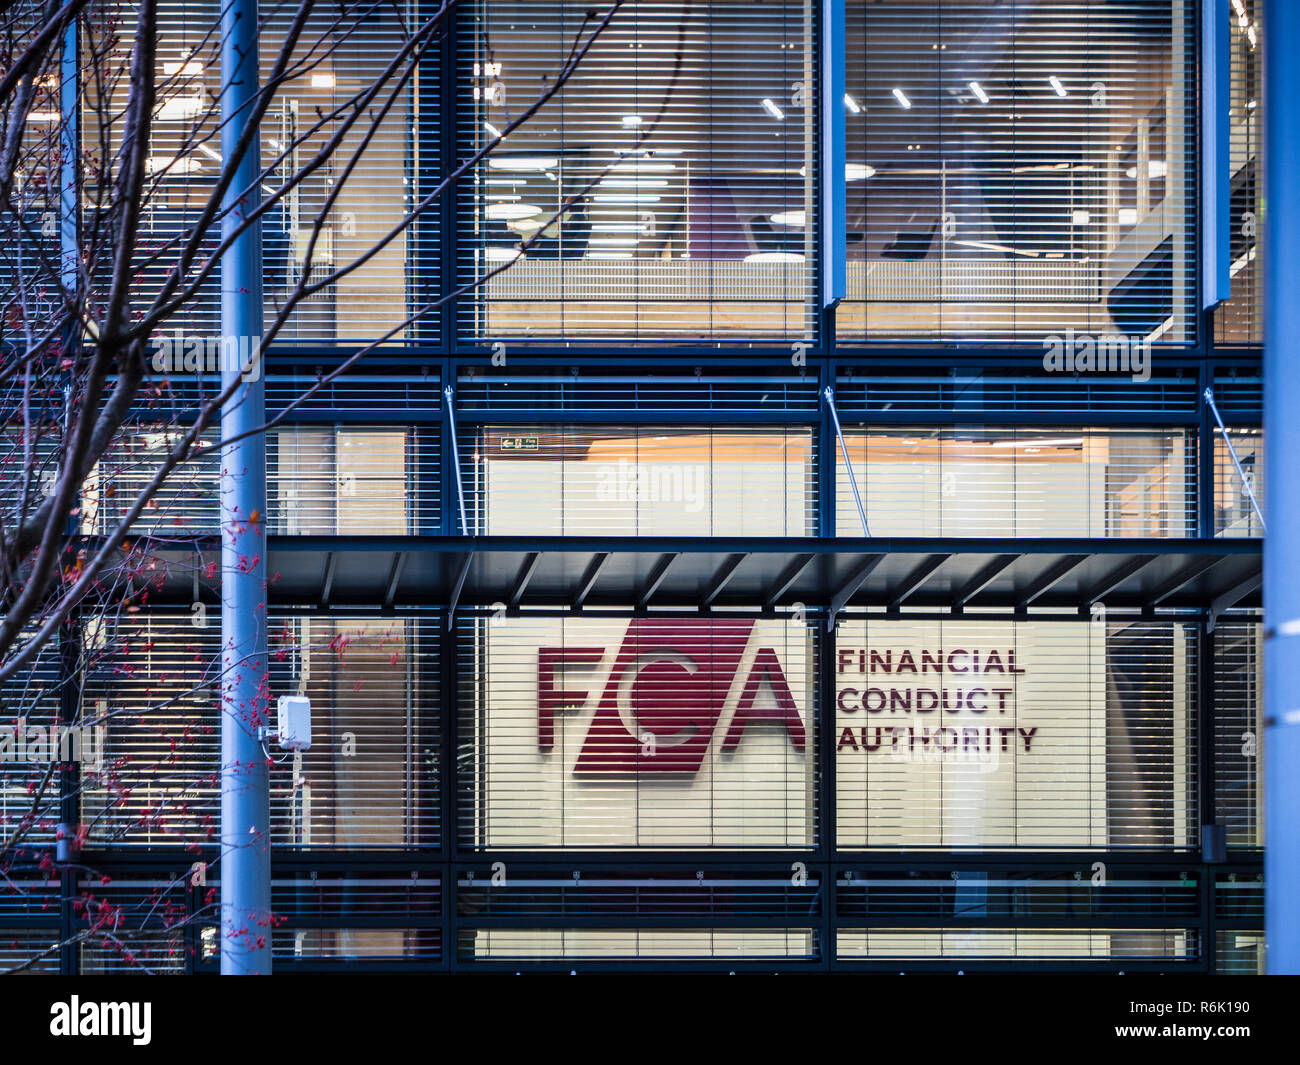 FCA Financial Conduct Authority HQ in International Quarter London in Stratford East London - opened 2018 architect Rogers Stirk Harbour + Partners - Stock Image